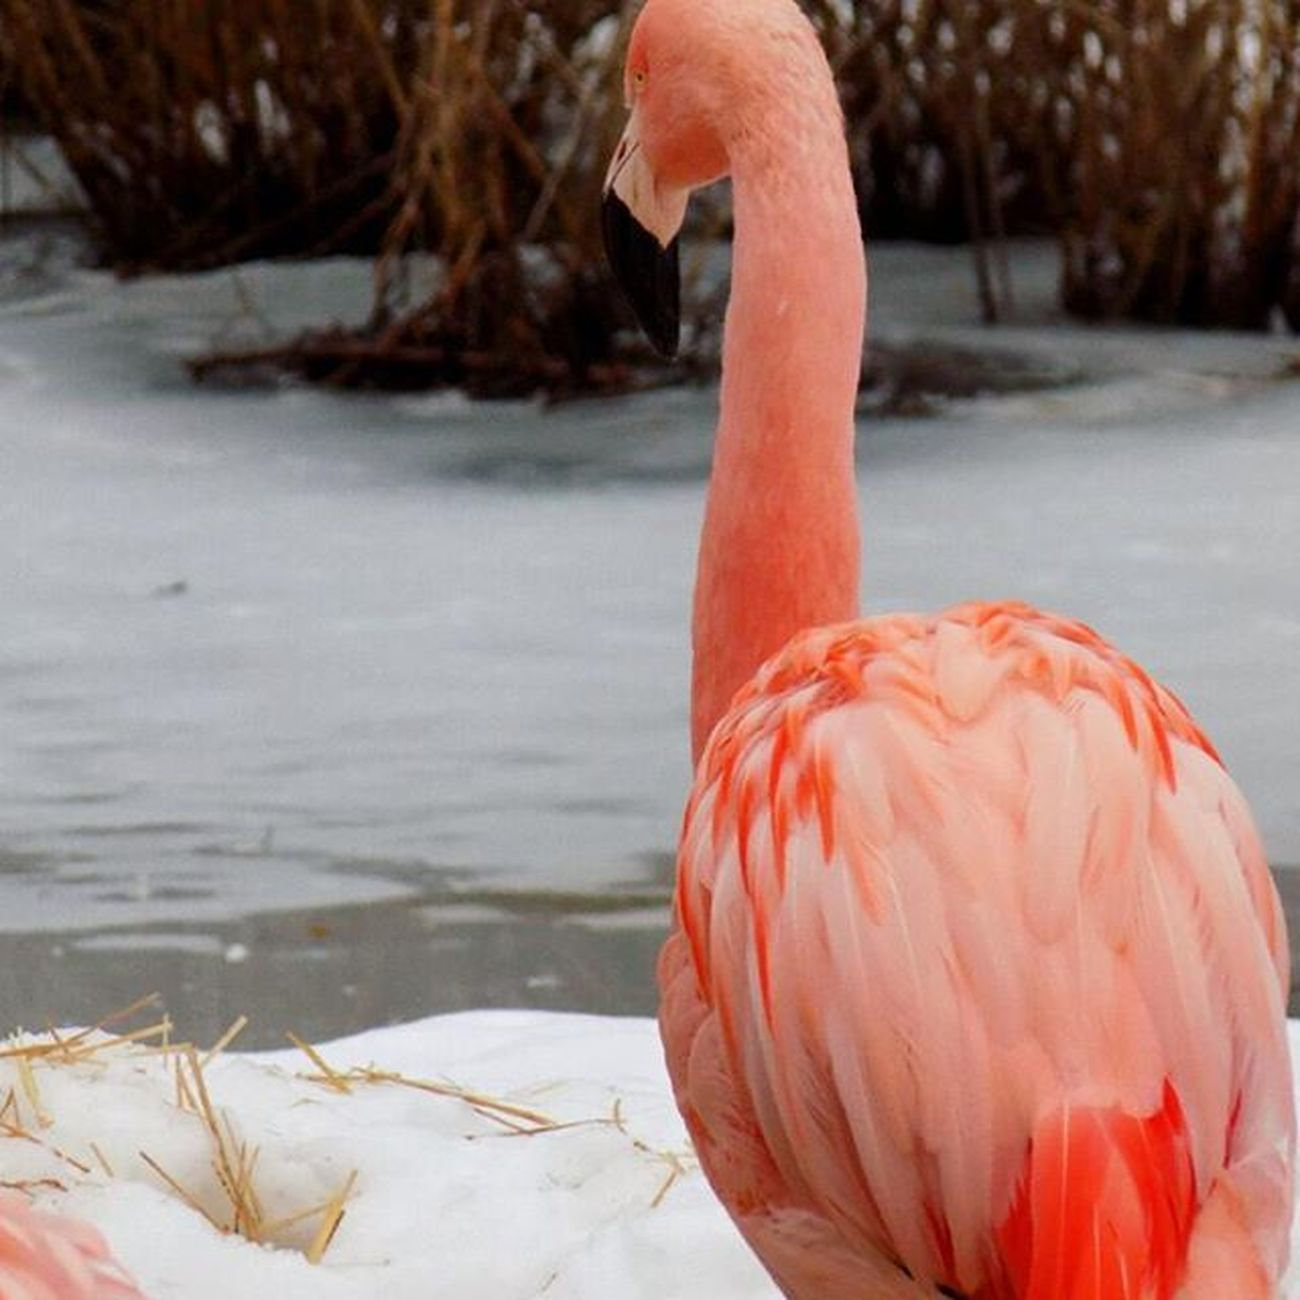 Nature Flamingo Beautiful Icelake Zoo Chicago Nikon Nikonshot Freezing Motog Cold Extremenature Bestoftheda IGDaily Latepost Latergram Travel Travelgram Instagood Orange Birds Wildlife Snow Winters USctai6